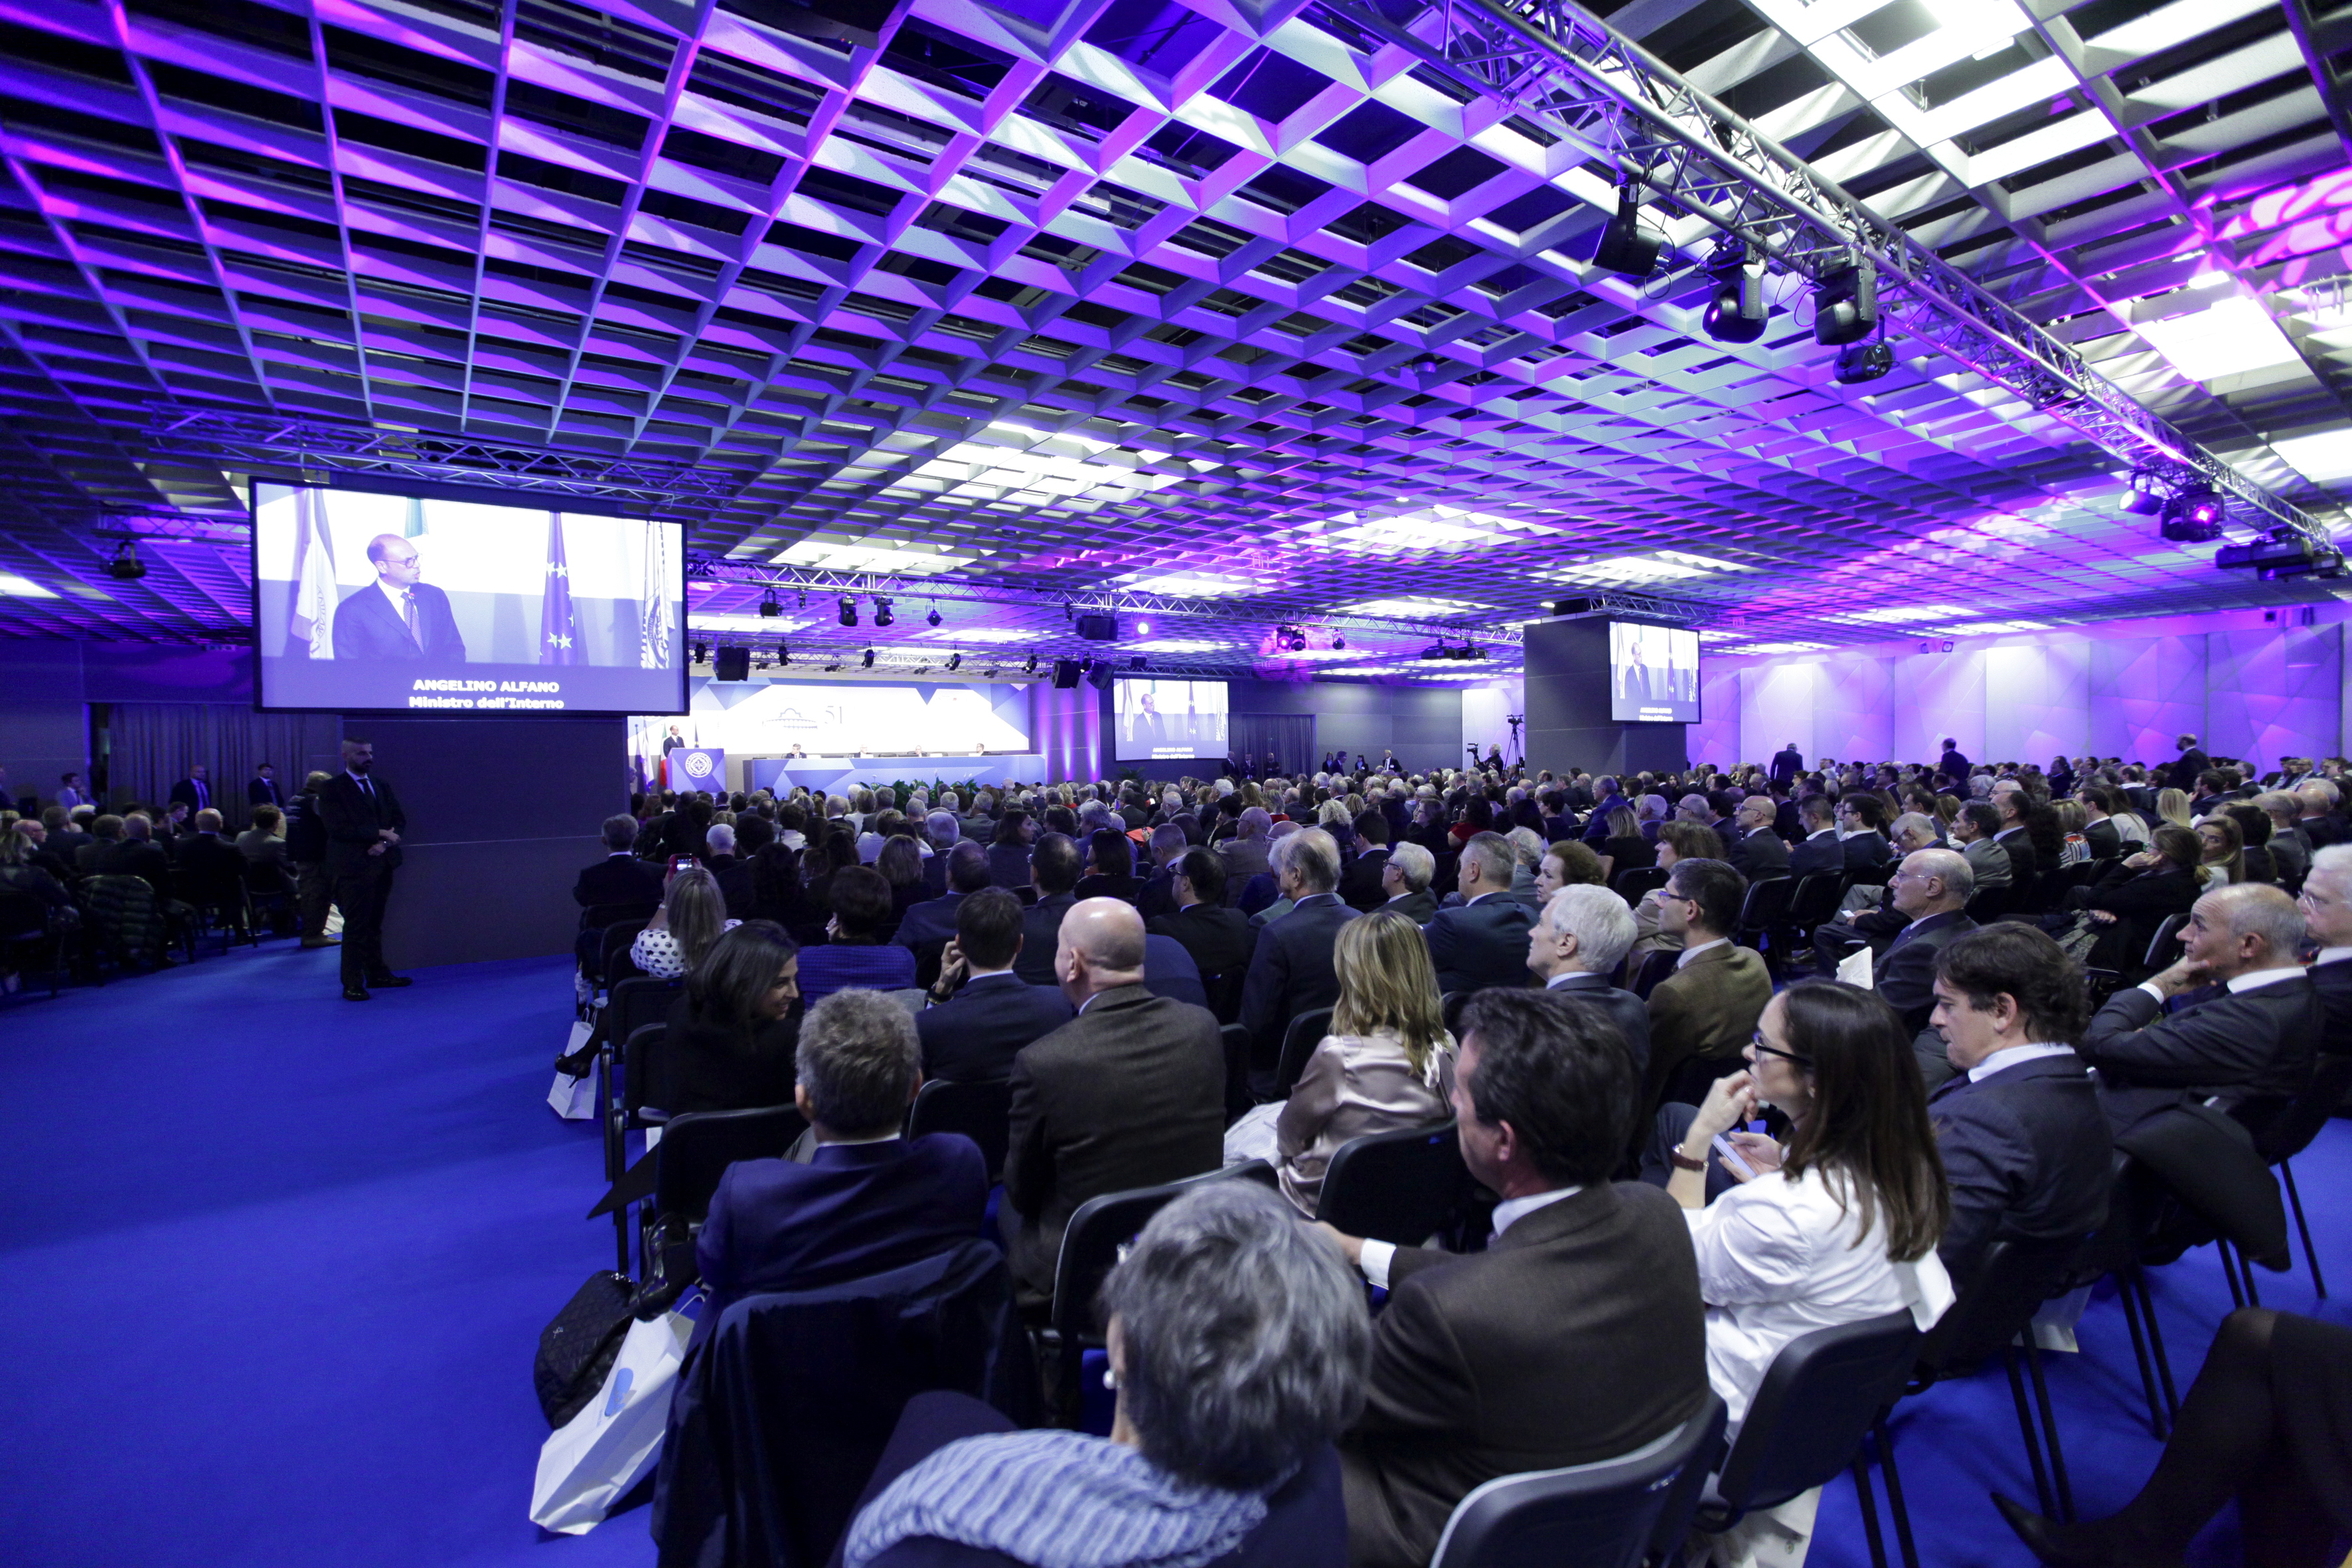 The veronafiere congress centre is a landmark in italy for for Verona fiera